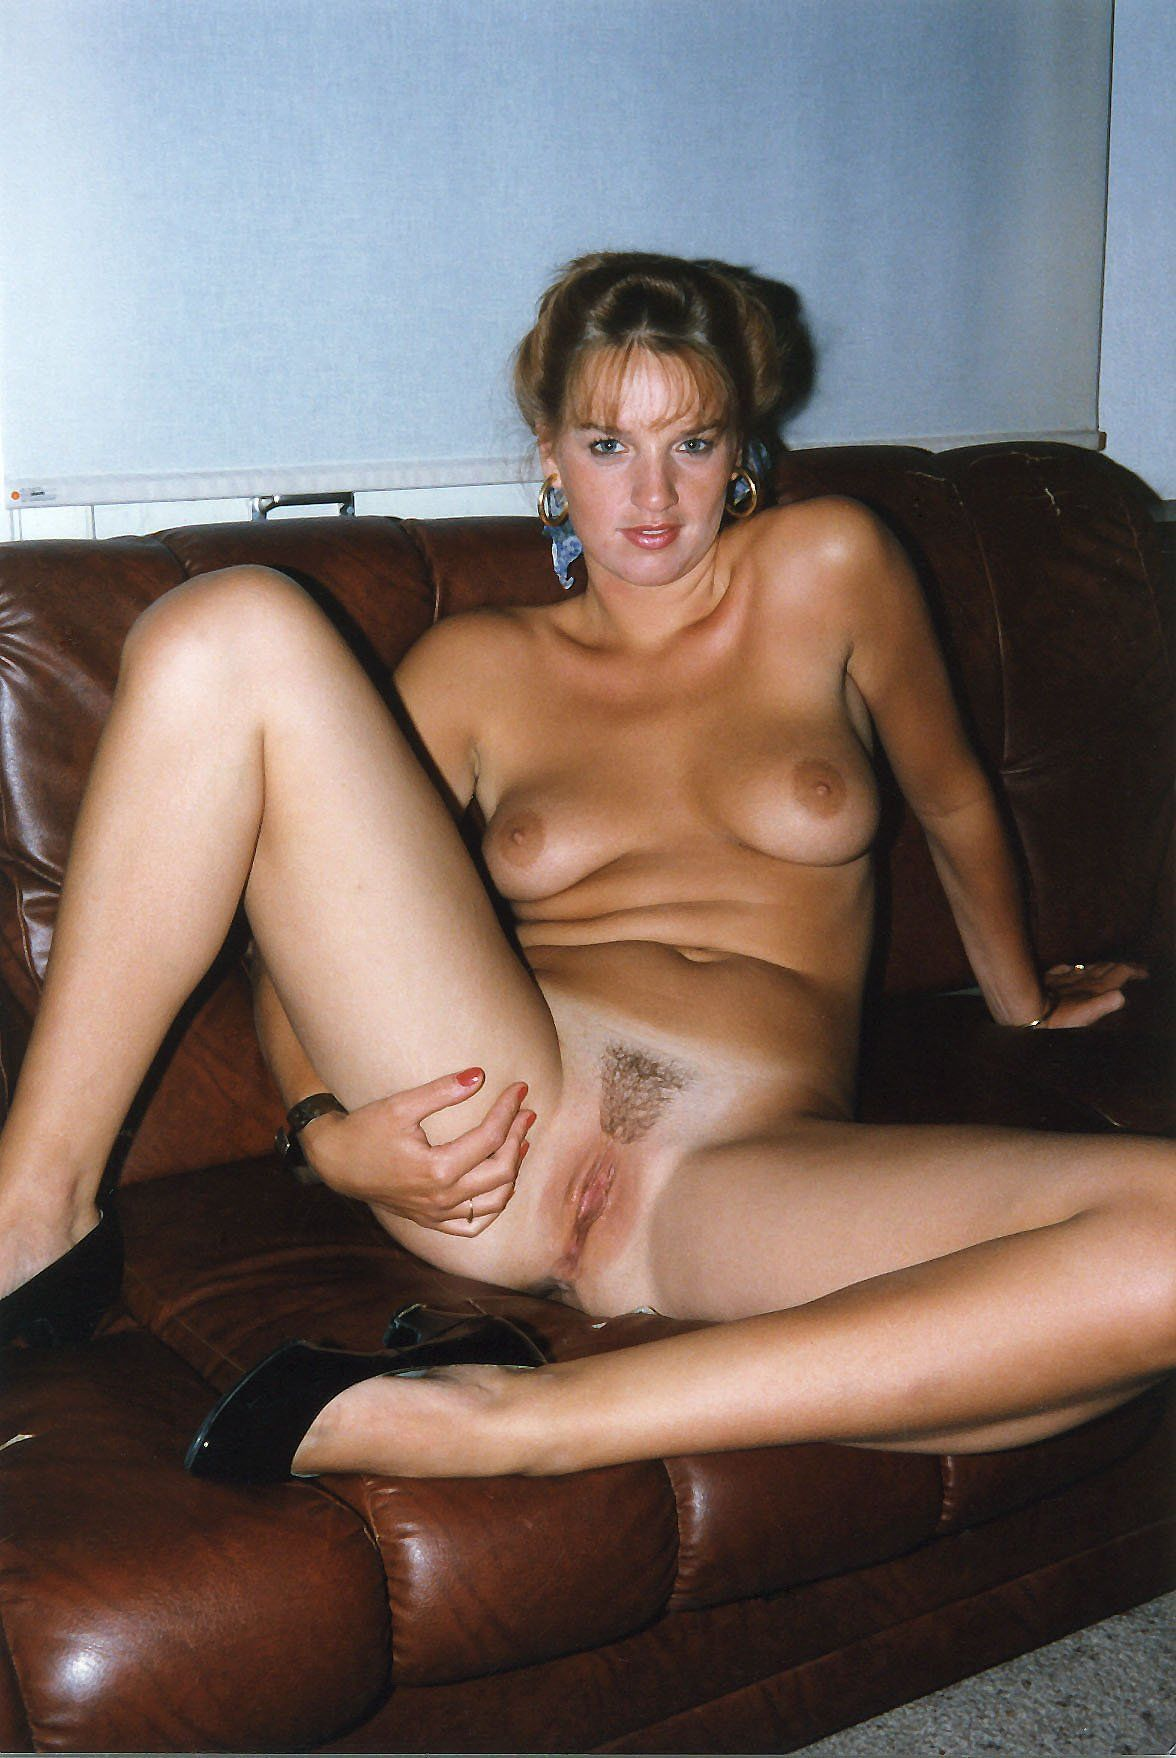 For that feet pussy milf amateur spread opinion